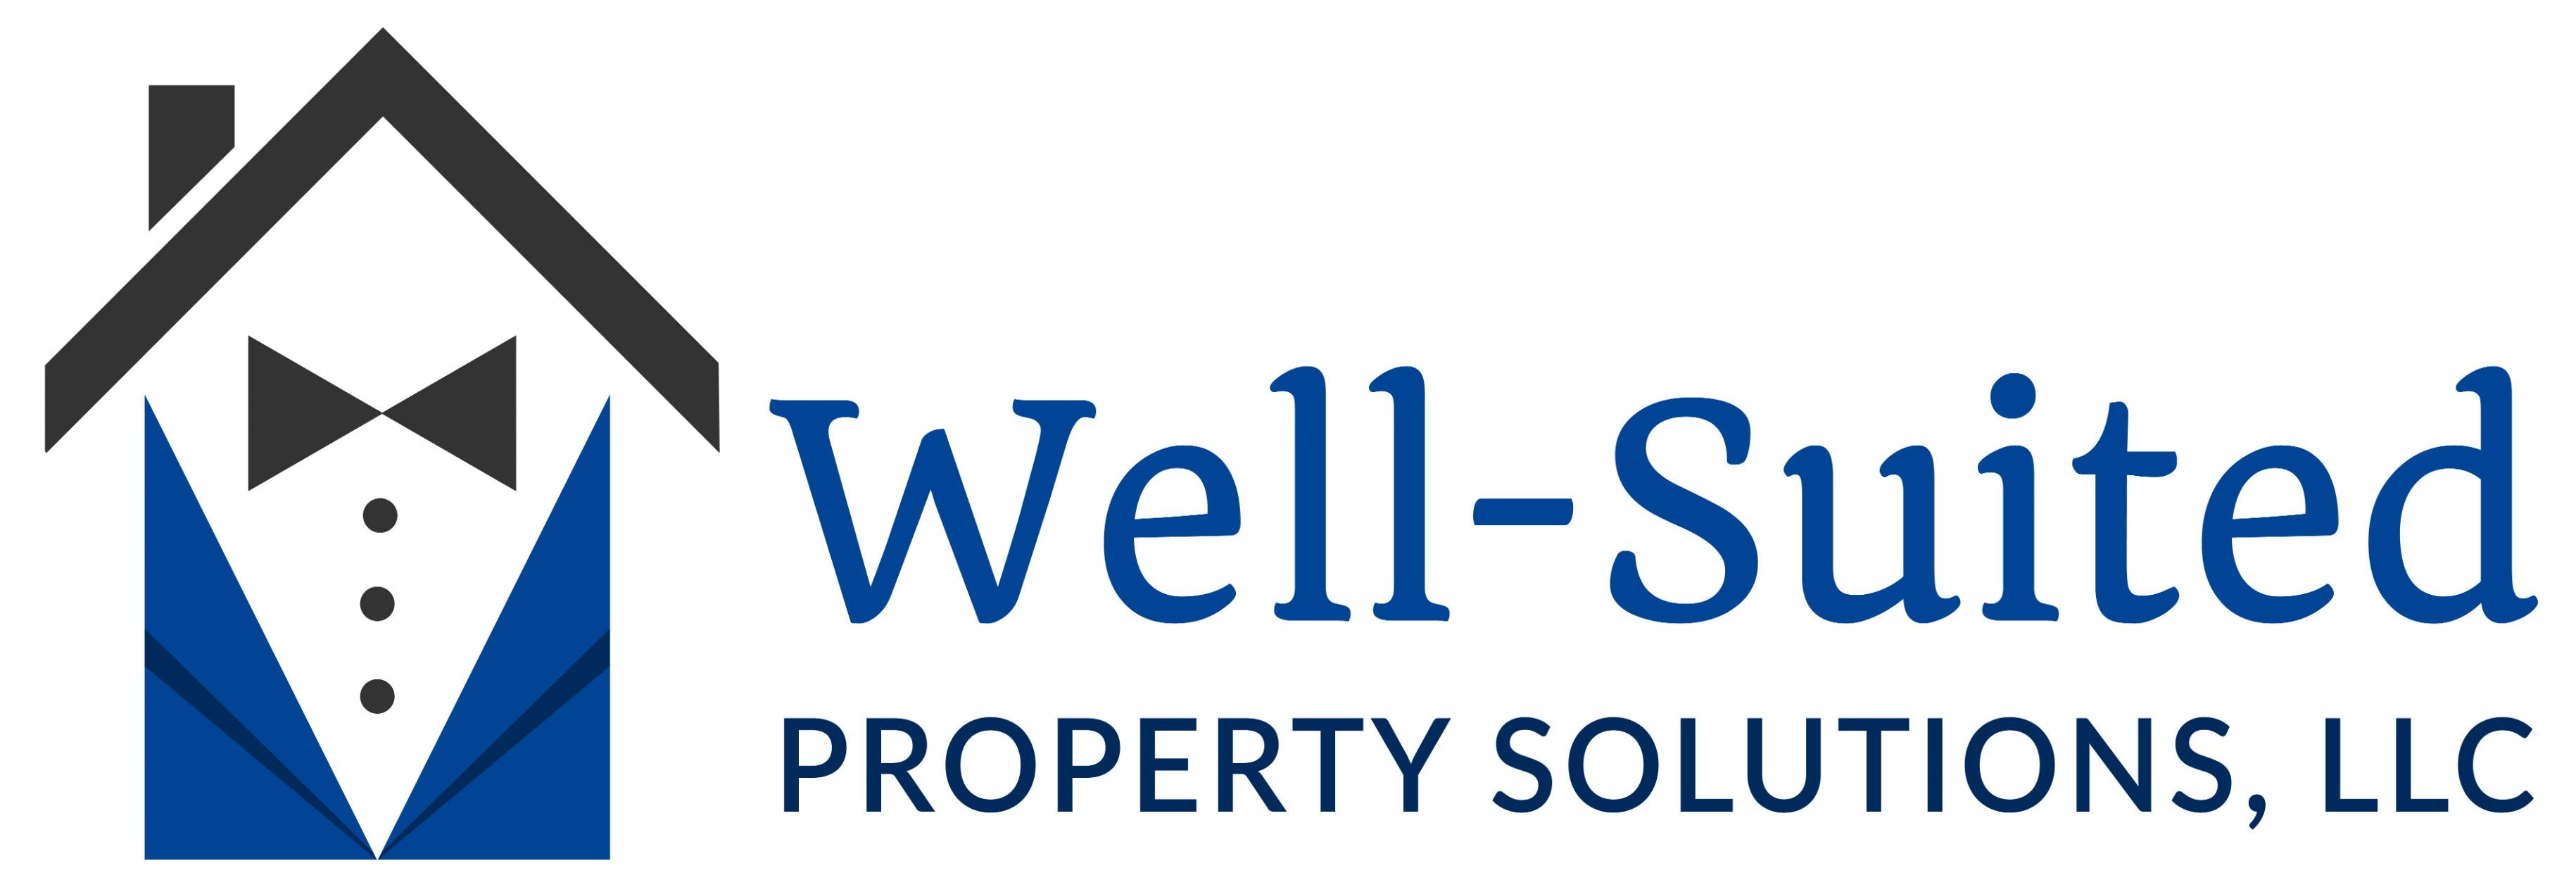 Well-Suited Property Solutions, LLC